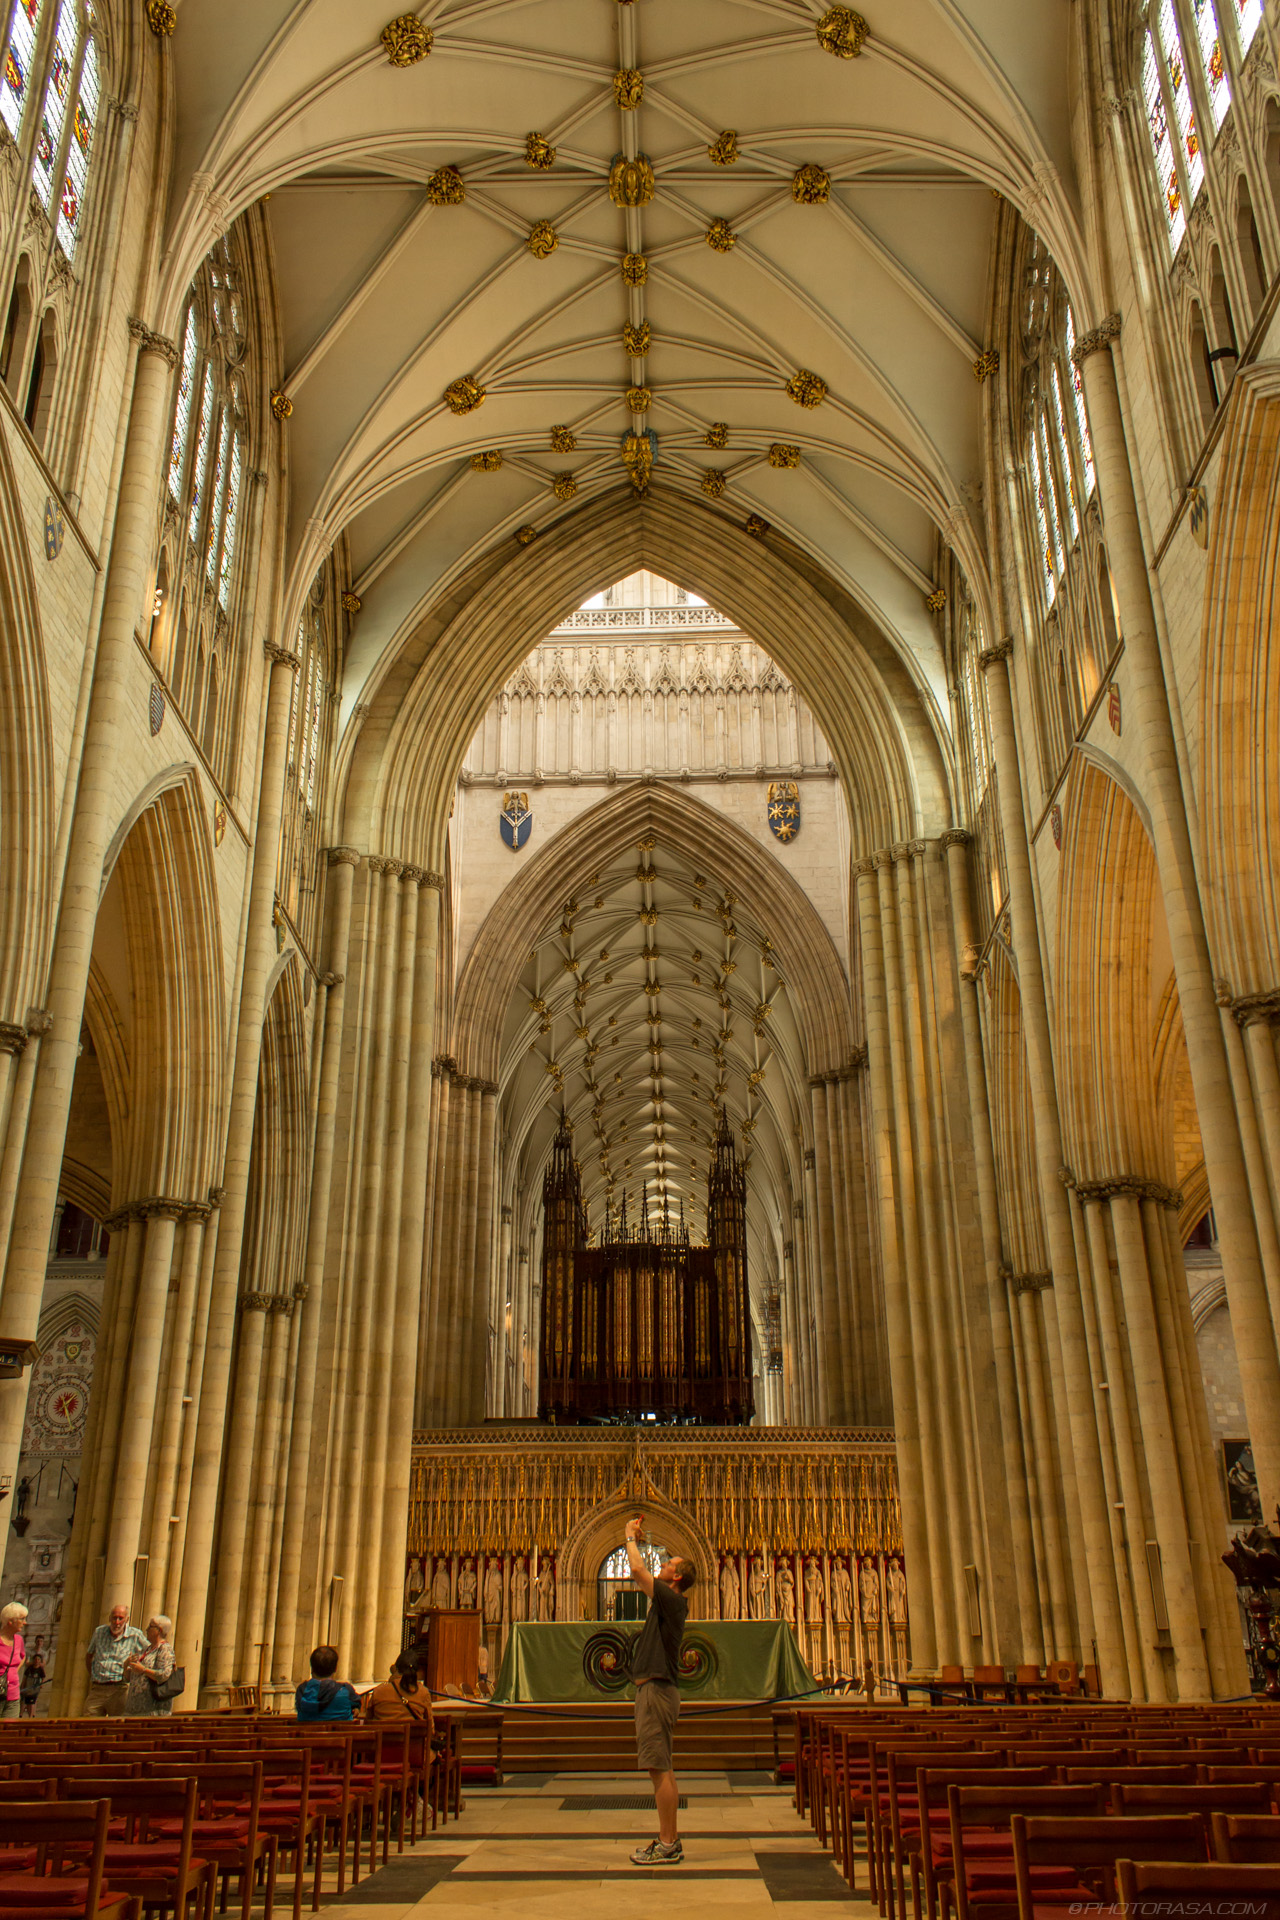 https://photorasa.com/yorkminster-cathedral/in-the-nave-looking-towards-the-choir/